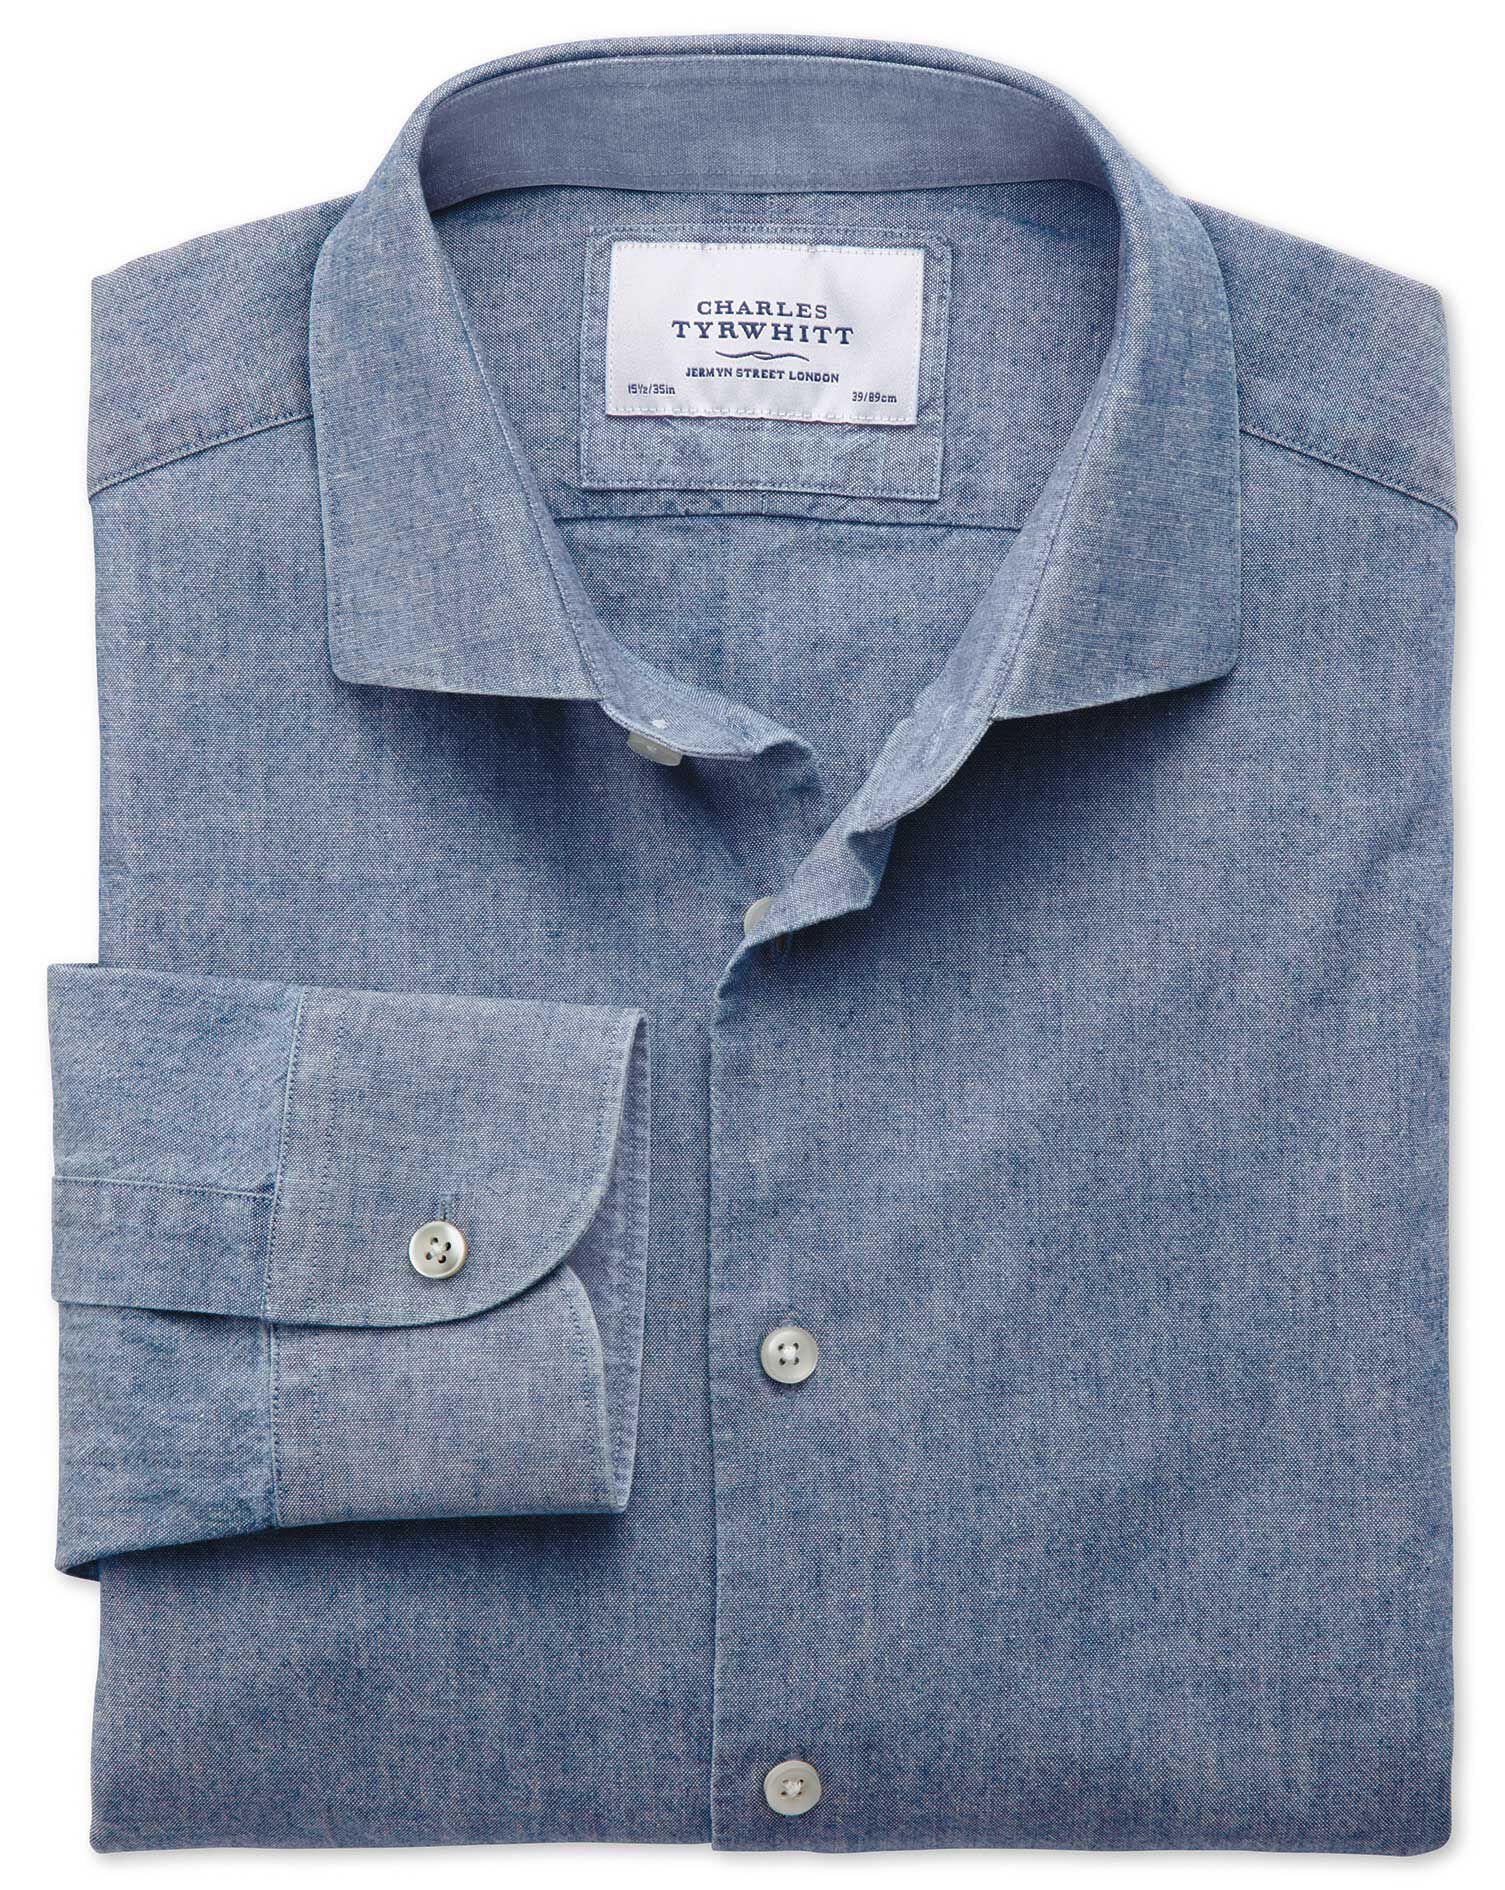 Classic Fit Semi-Cutaway Collar Business Casual Chambray Mid Blue Cotton Formal Shirt Single Cuff Si